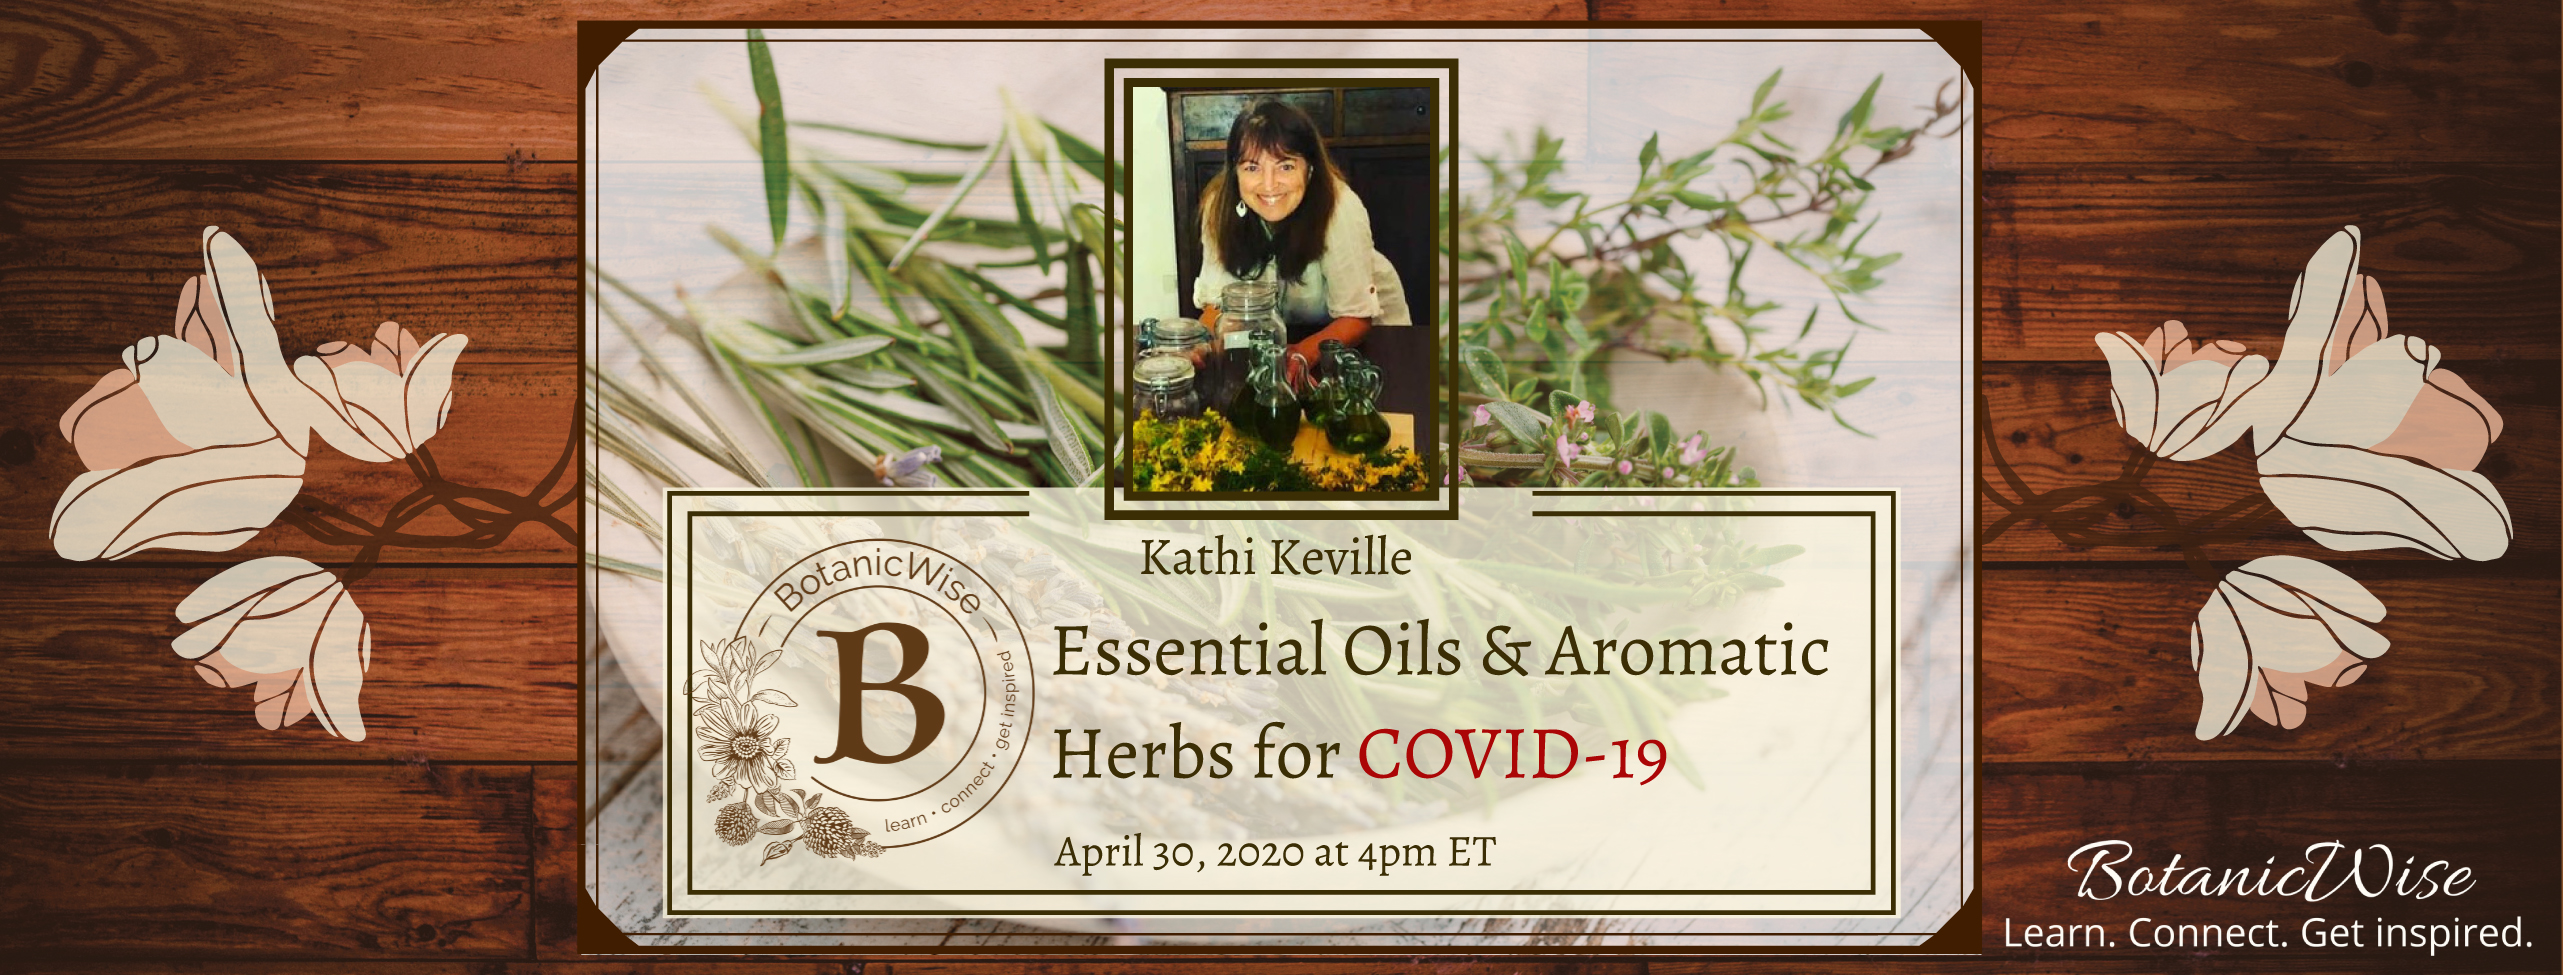 Essential Oils & Aromatic Herbs for COVID-19 with Kathi Keville